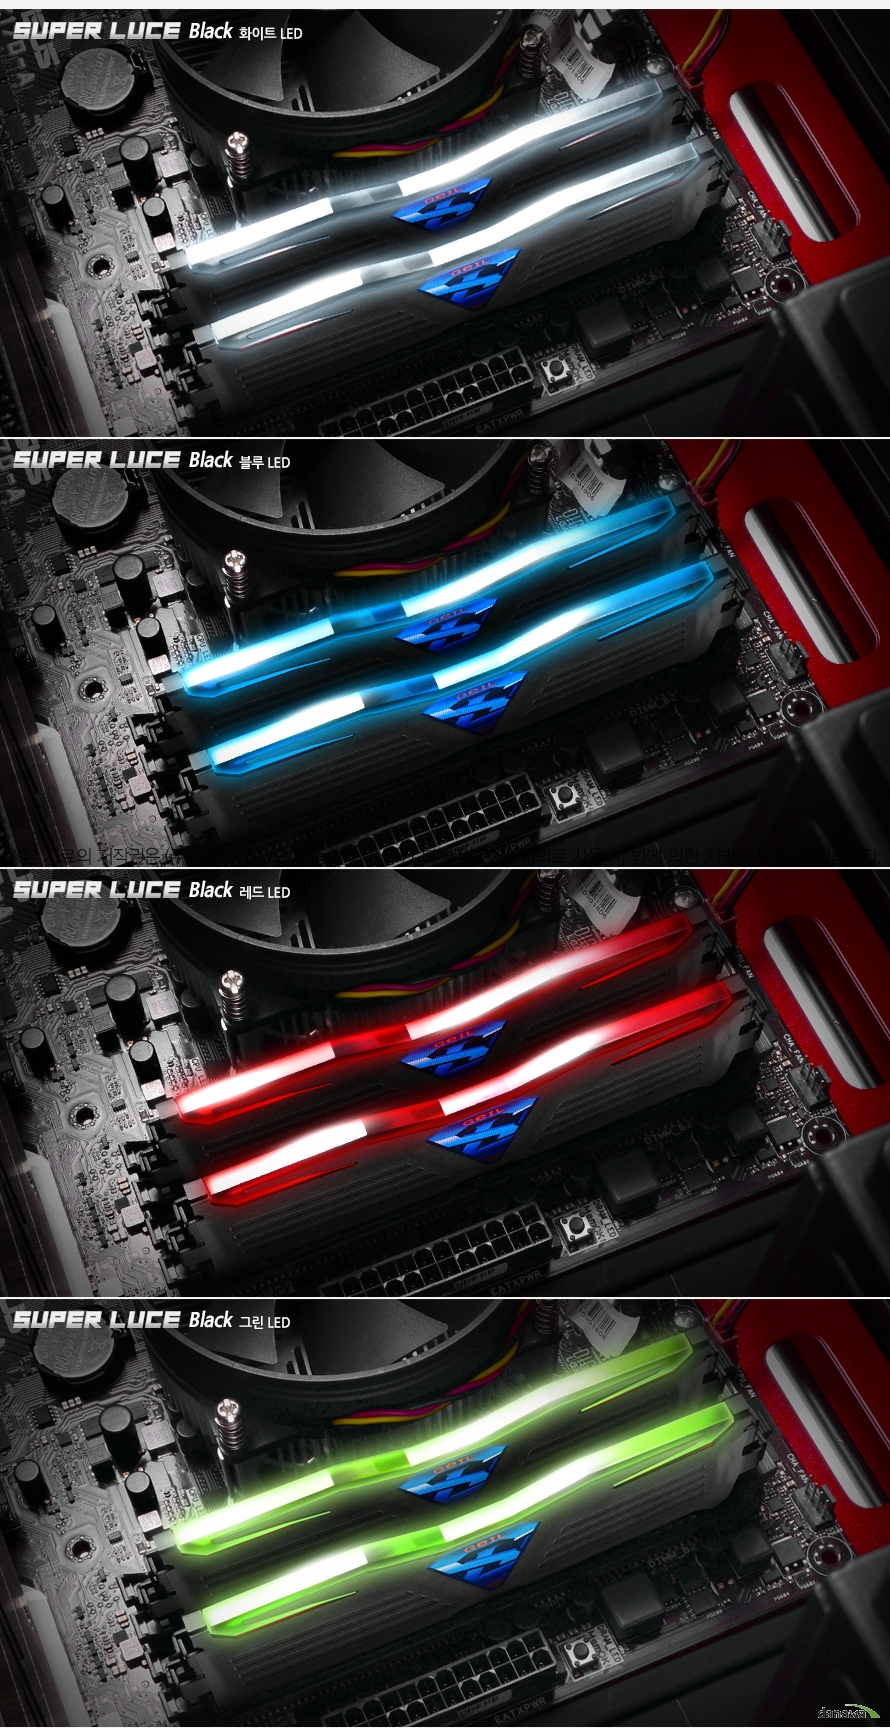 GeIL DDR4 SUPER LUCE Black